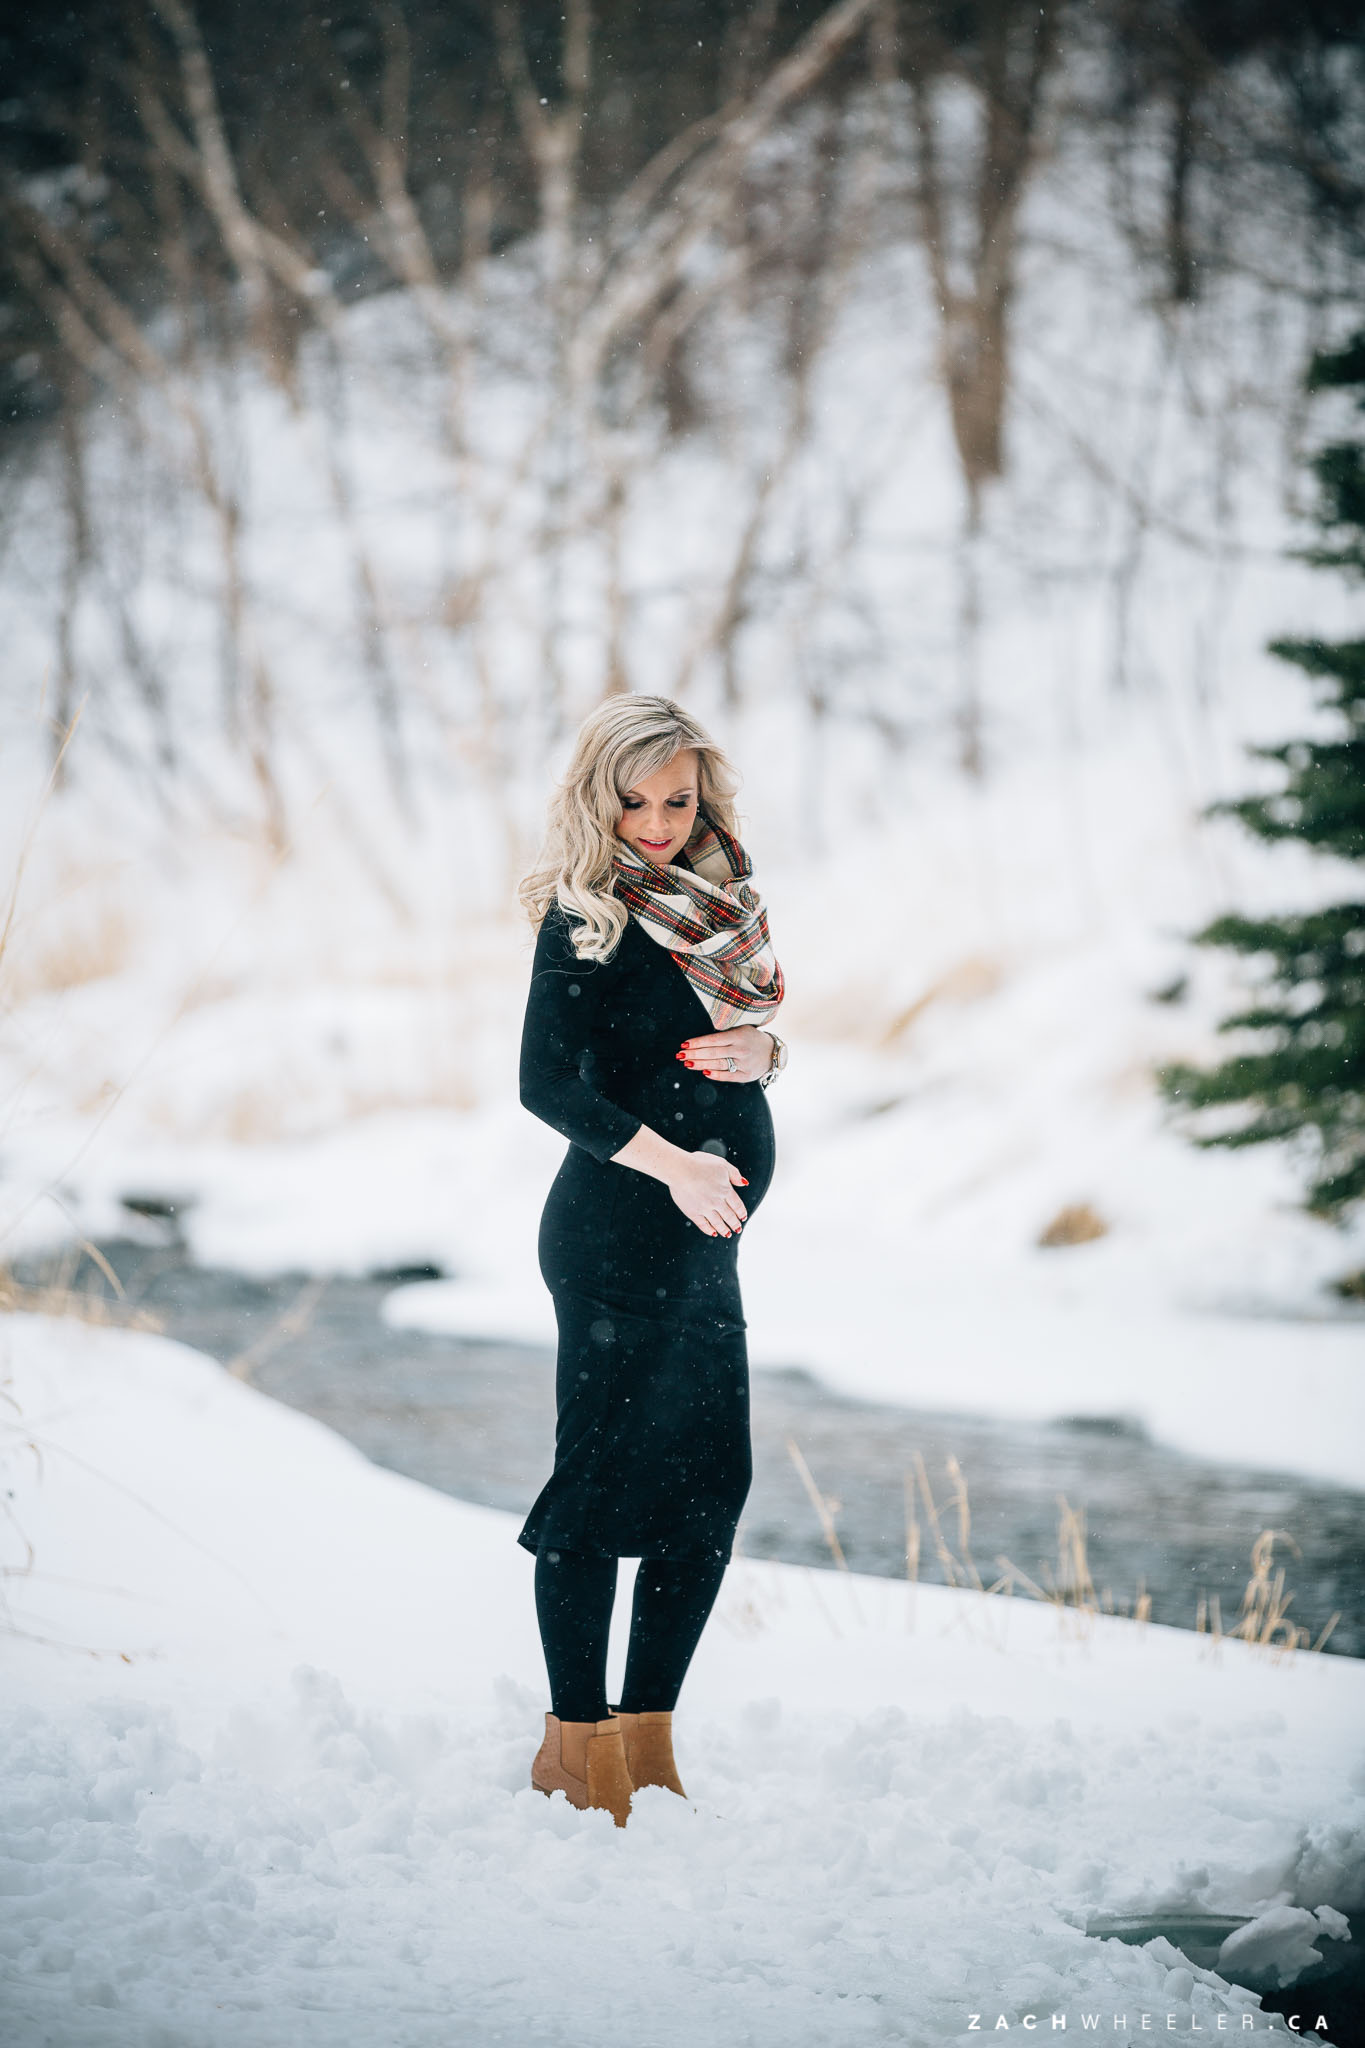 Cherie St John S Maternity Session St John S Newfoundland Wedding Photographers